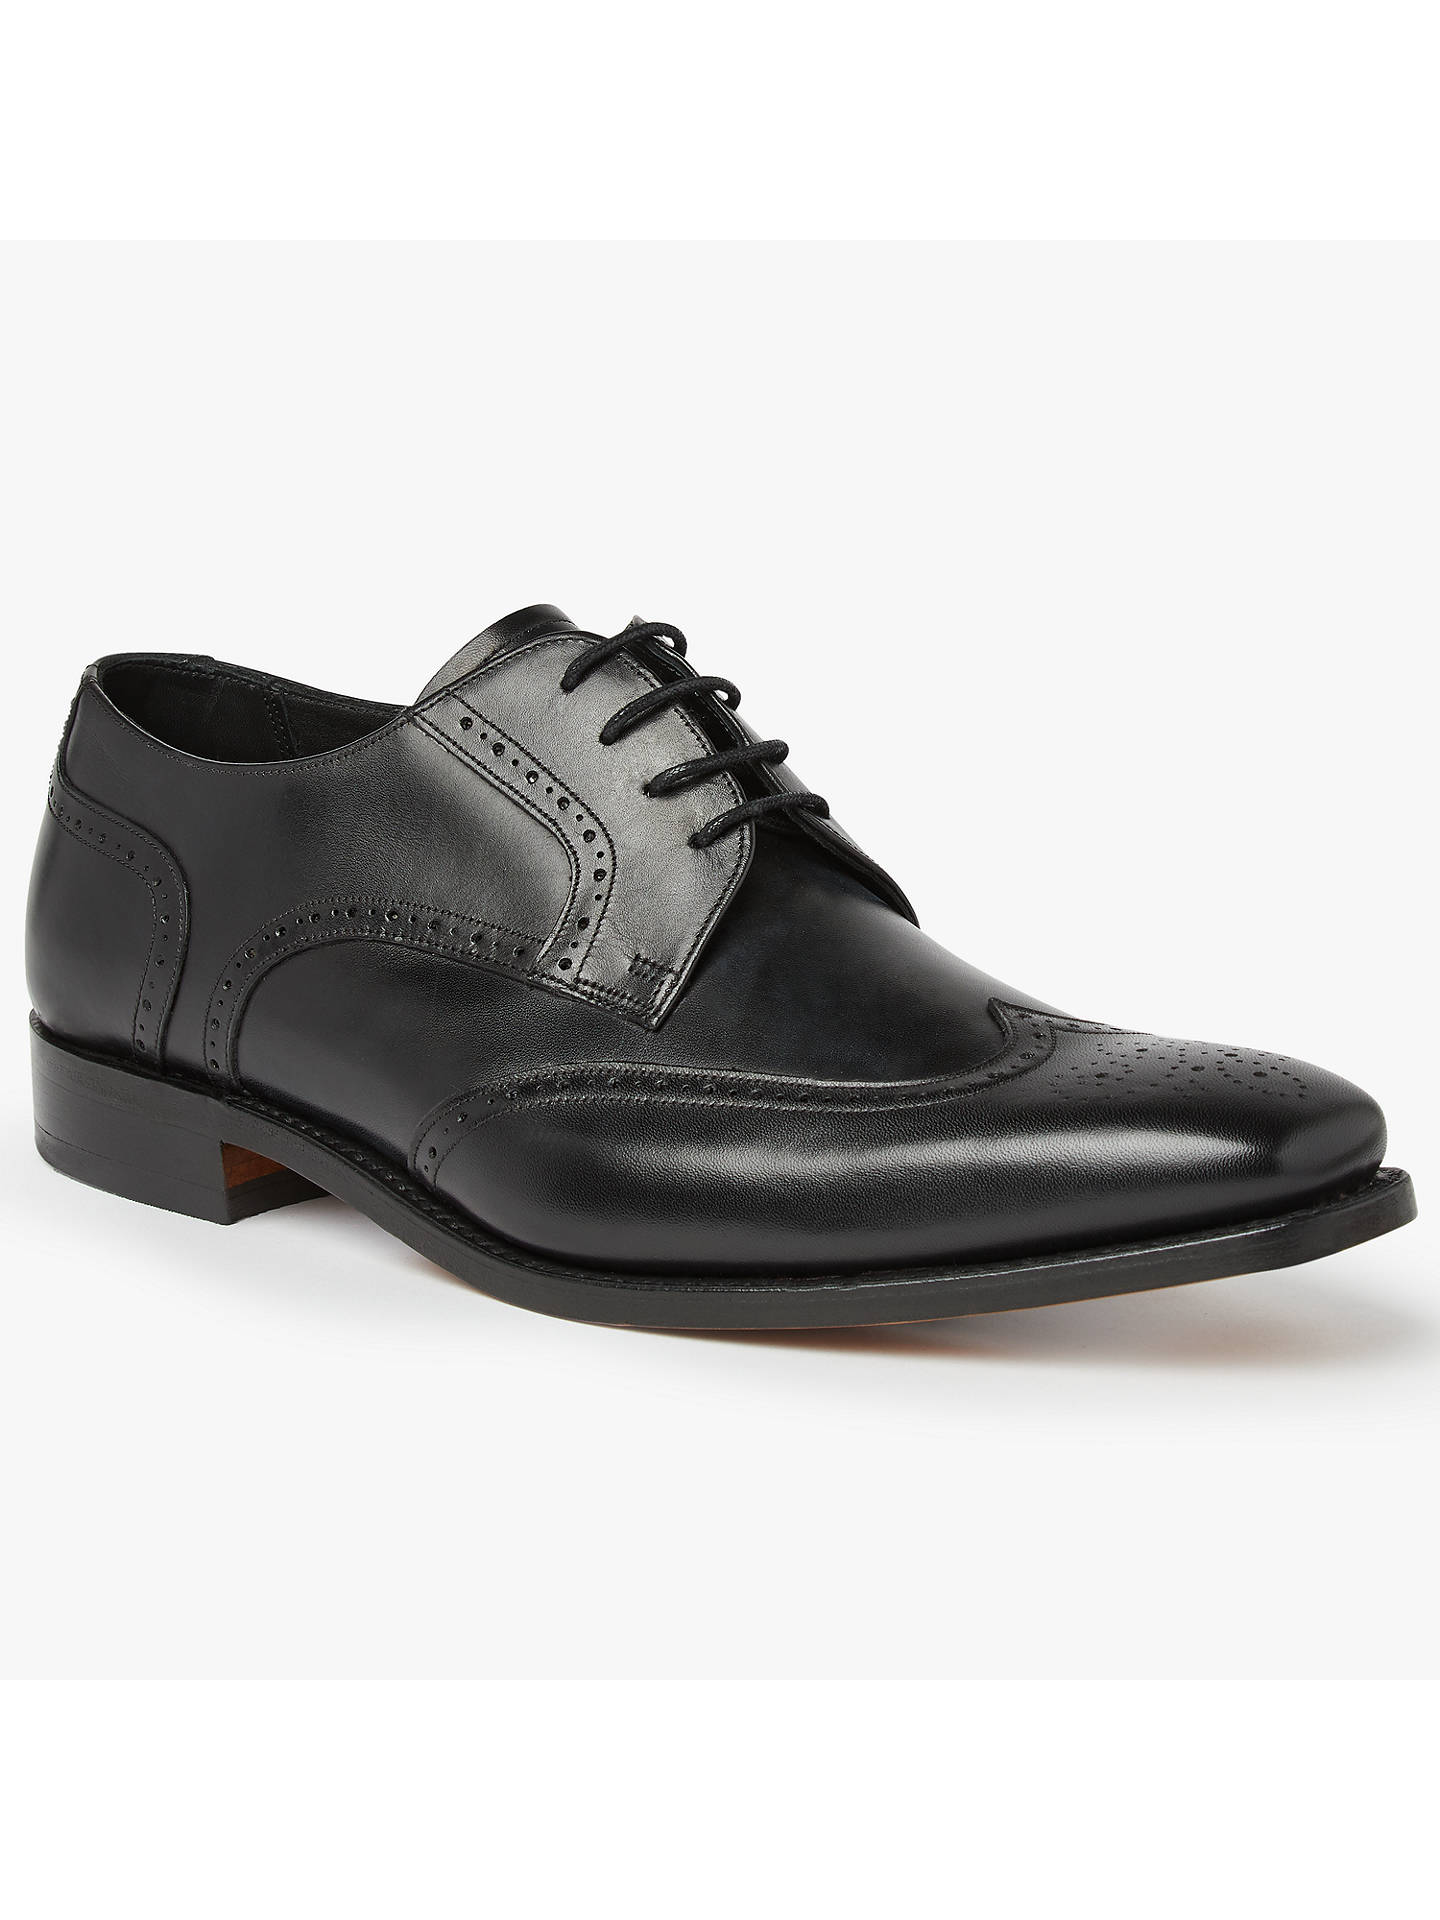 BuyBarker Jordan Wingtip Leather Derby Shoes, Black, 7 Online at johnlewis.com